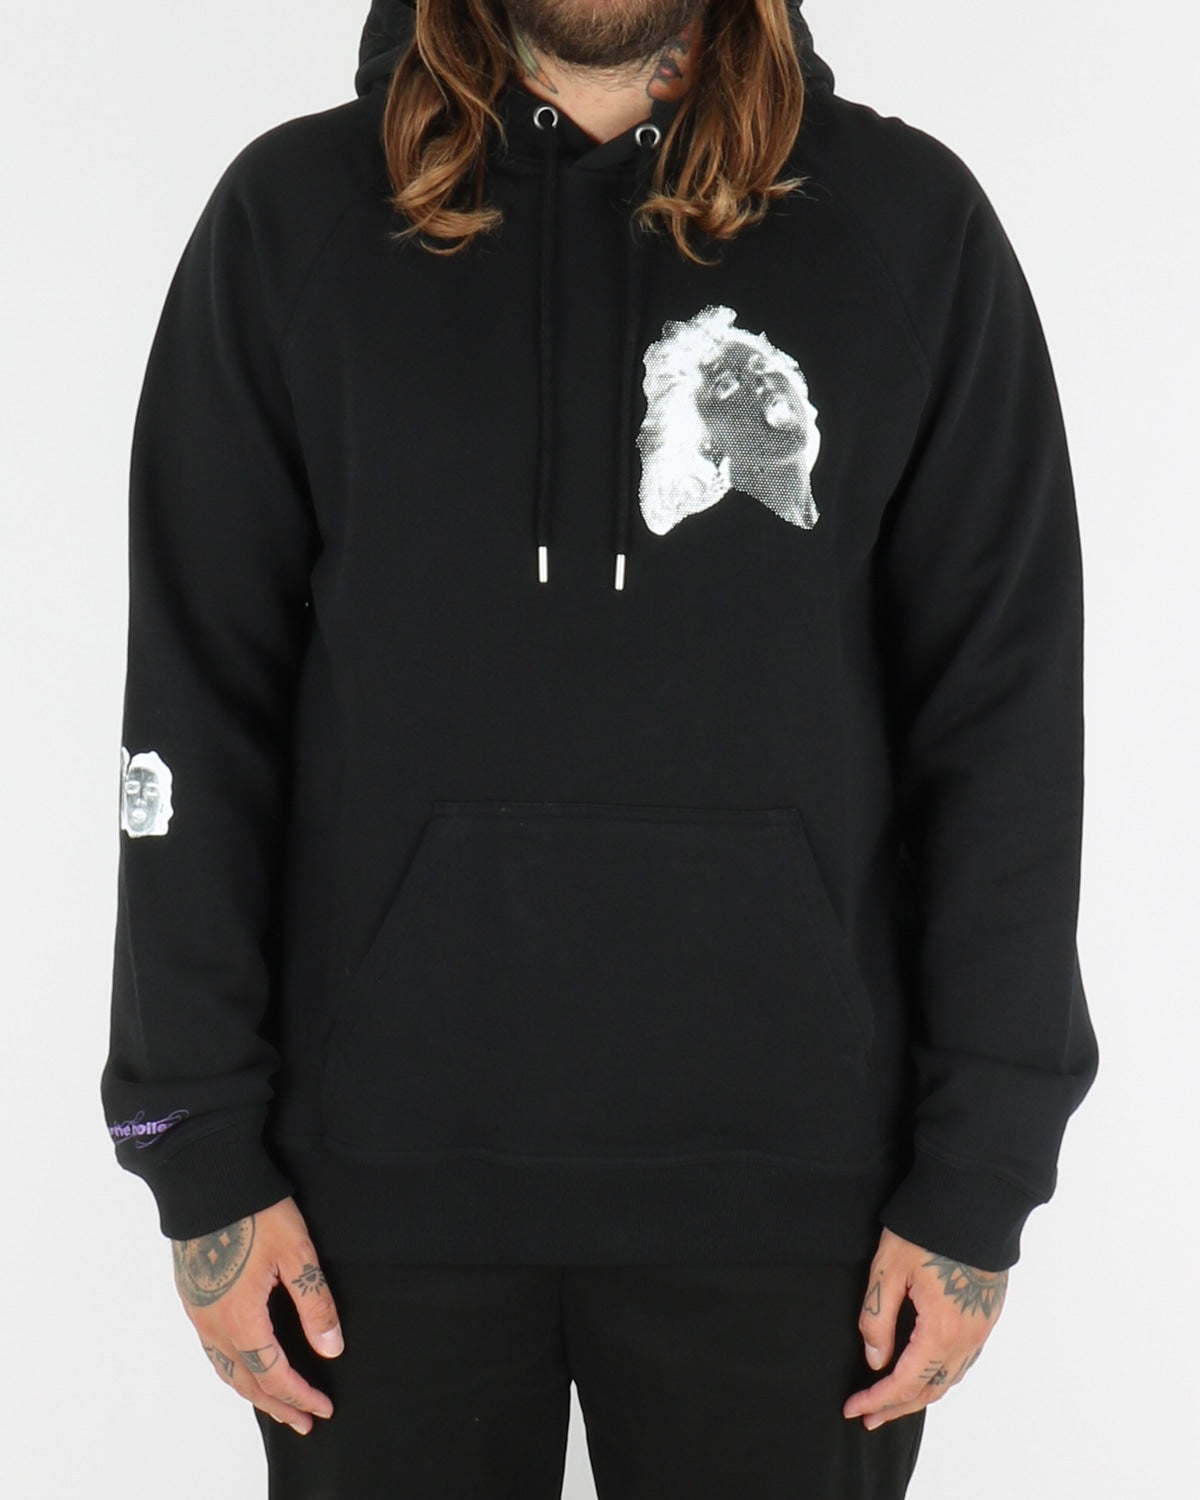 carne bollente_rhaa lovely hoodie_black_view_1_4